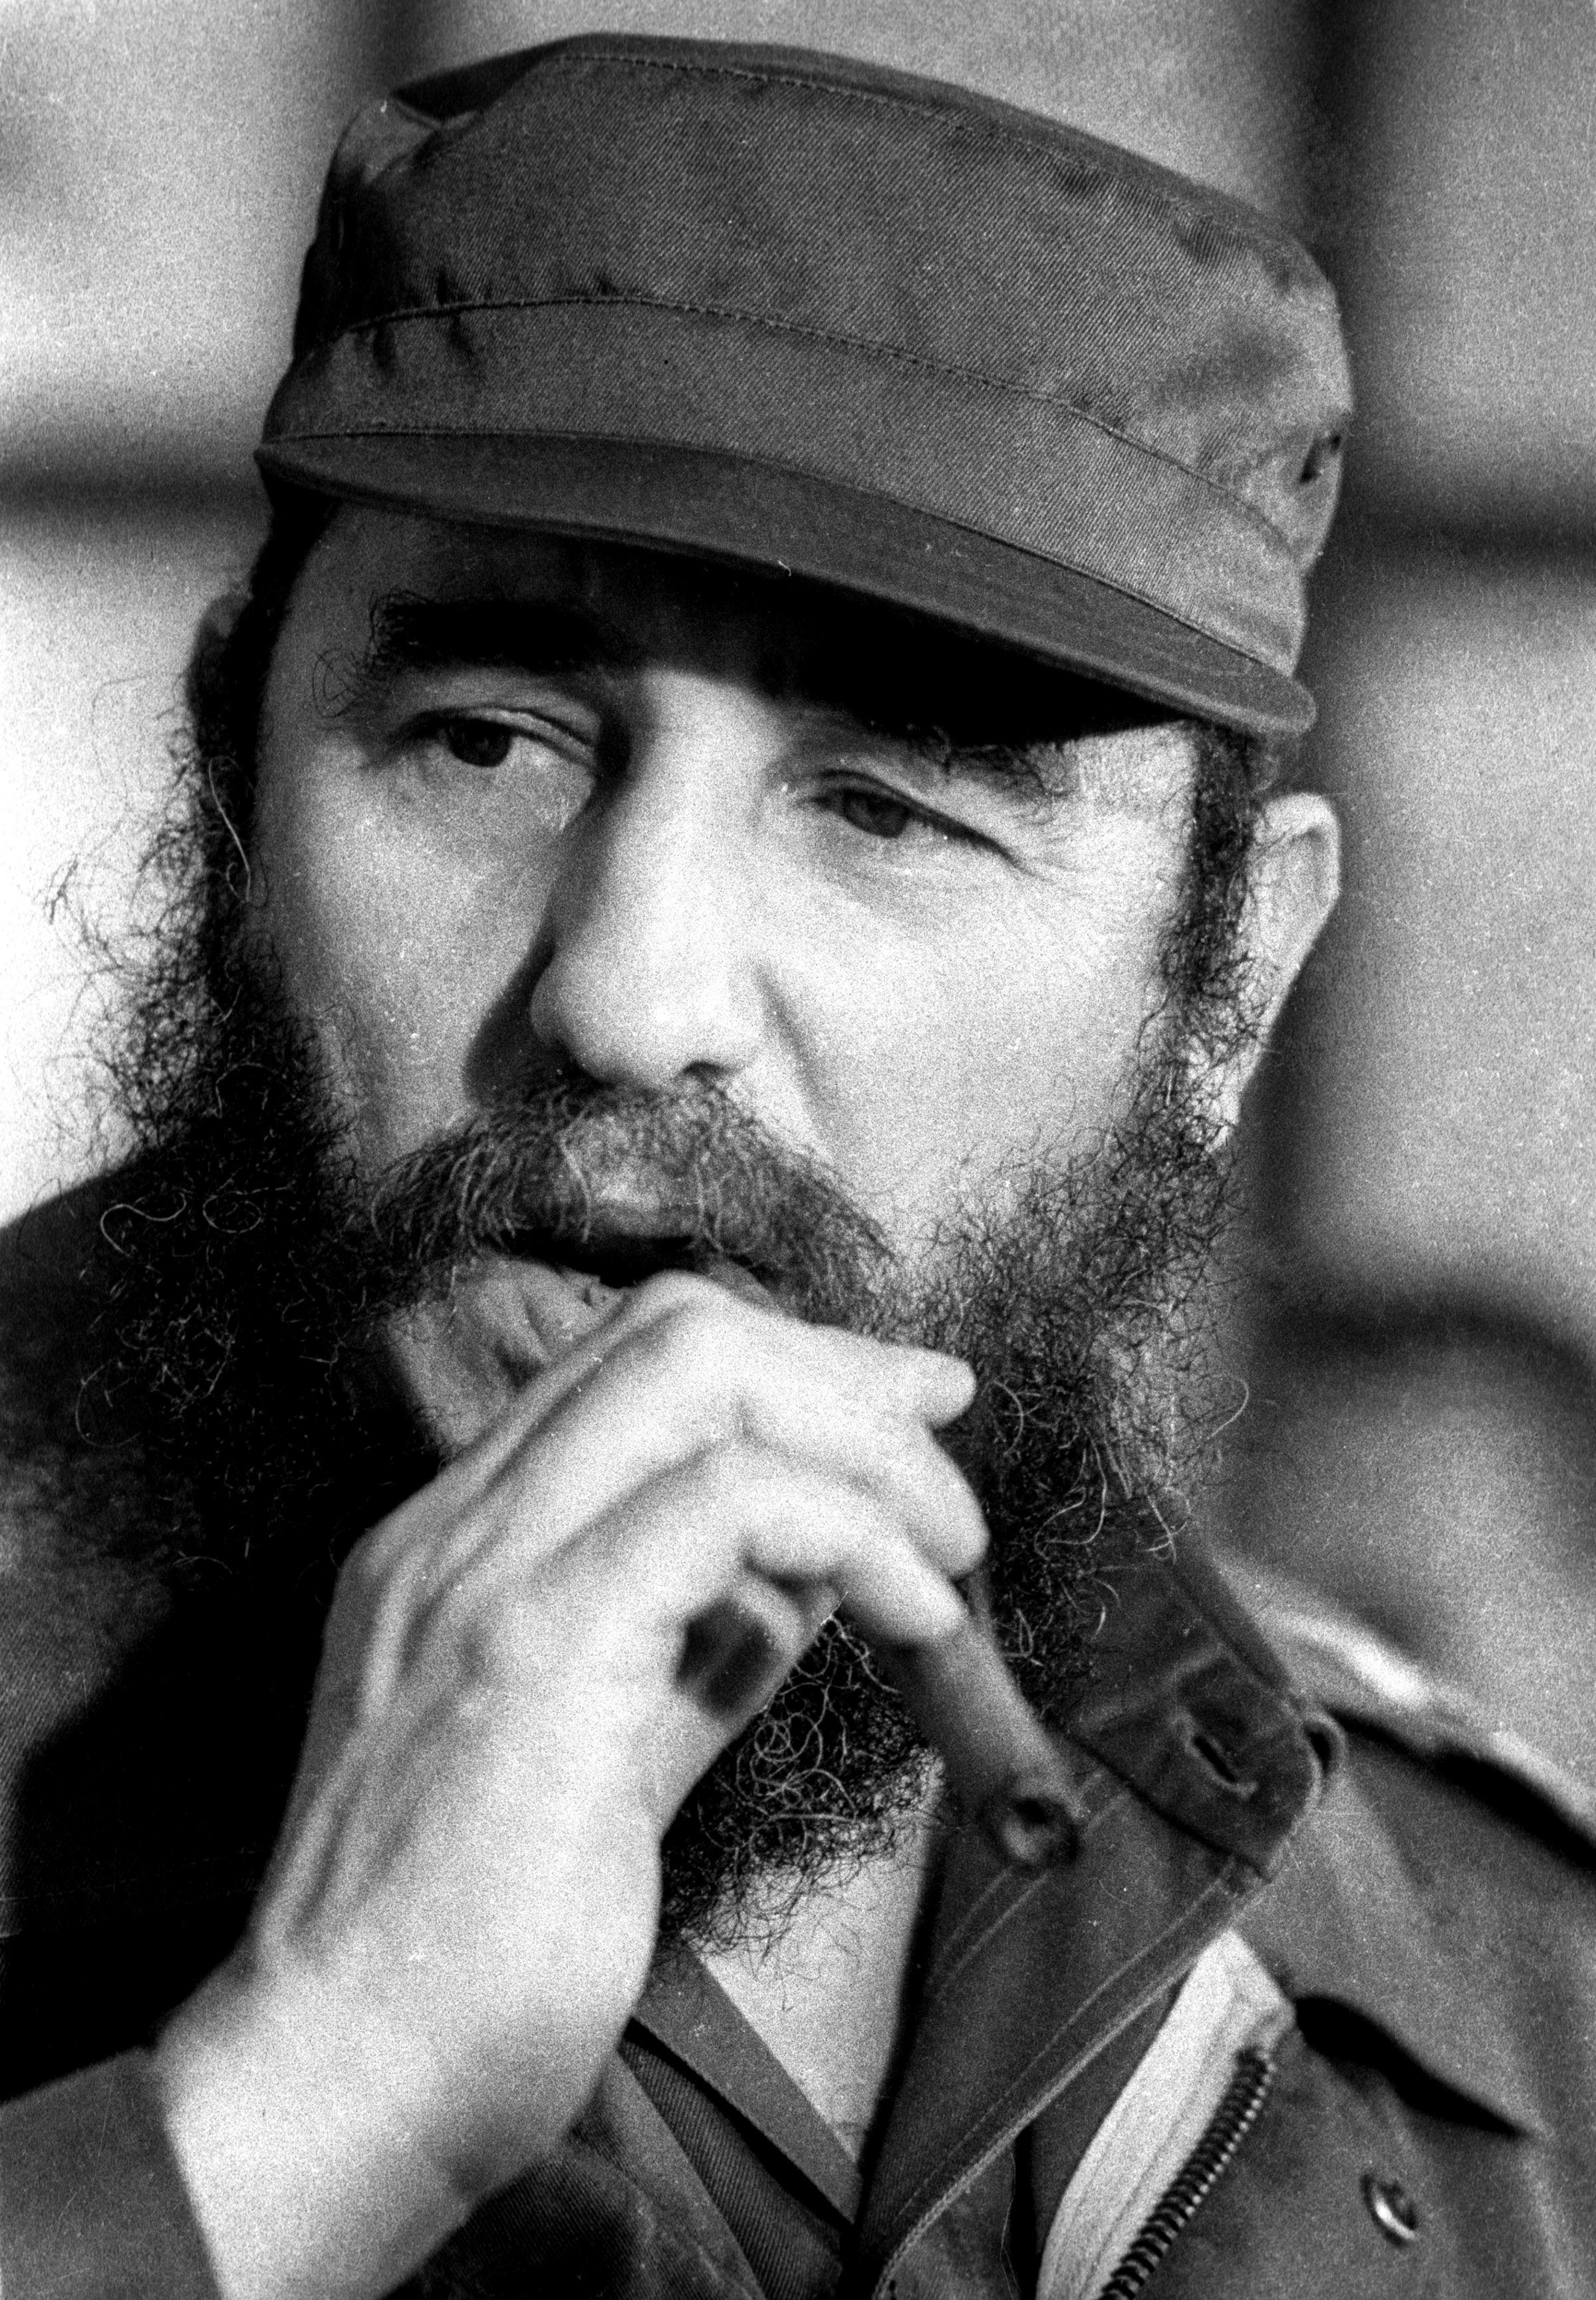 Then Cuban President Fidel Castro smokes a cigar during a meeting of the National Assembly in Havana, in this December 2, 1976 file photo. REUTERS/Prensa Latina/File Photo